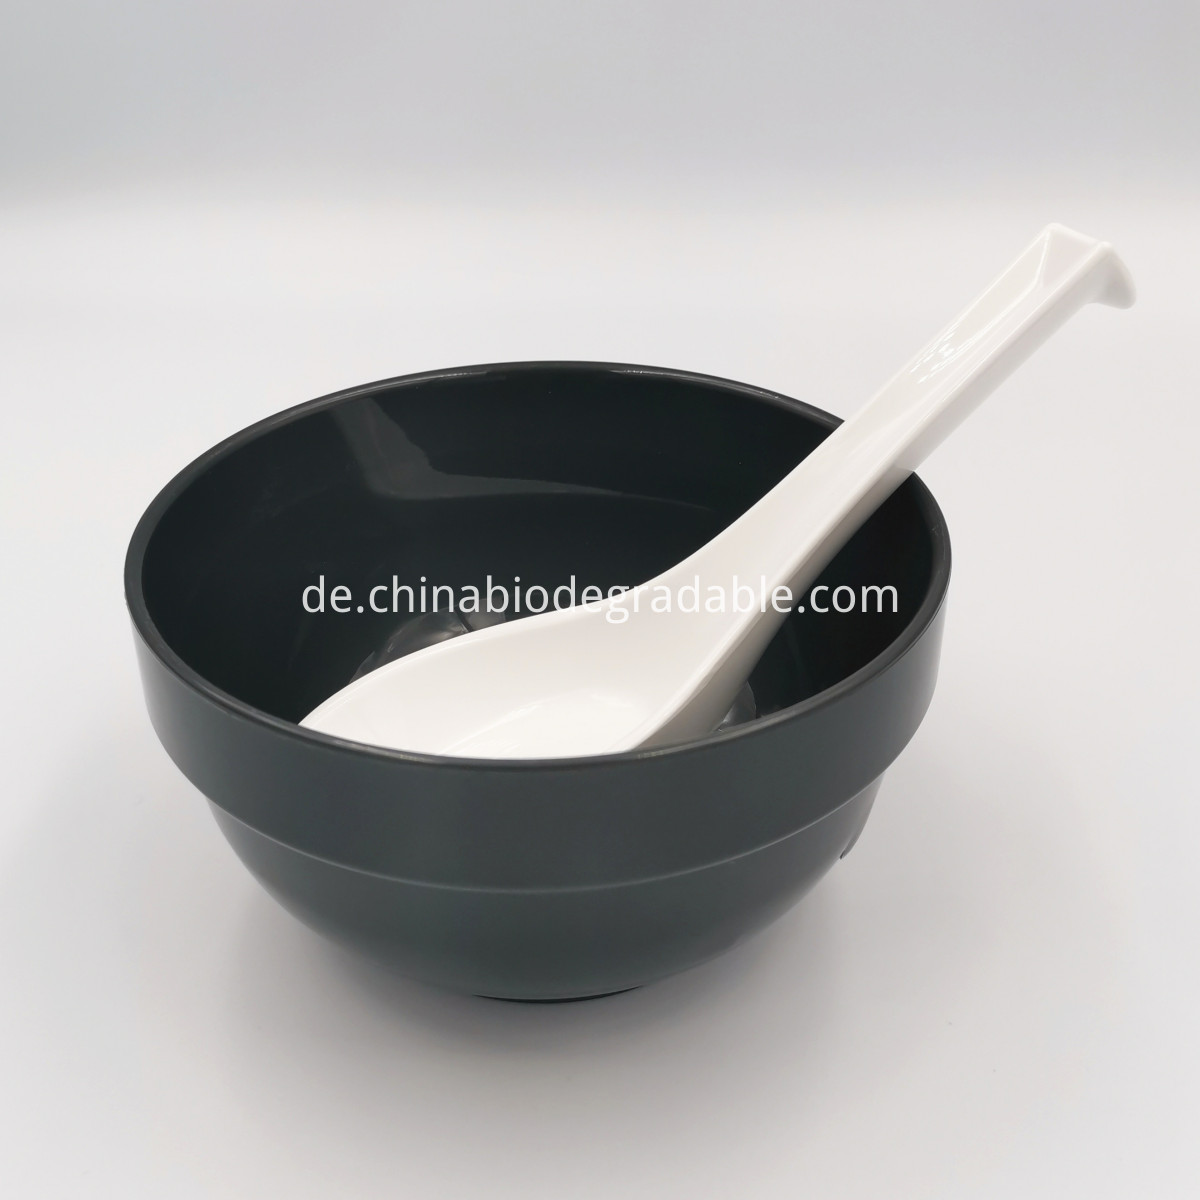 Environmentally High Quality Compostable Bowl